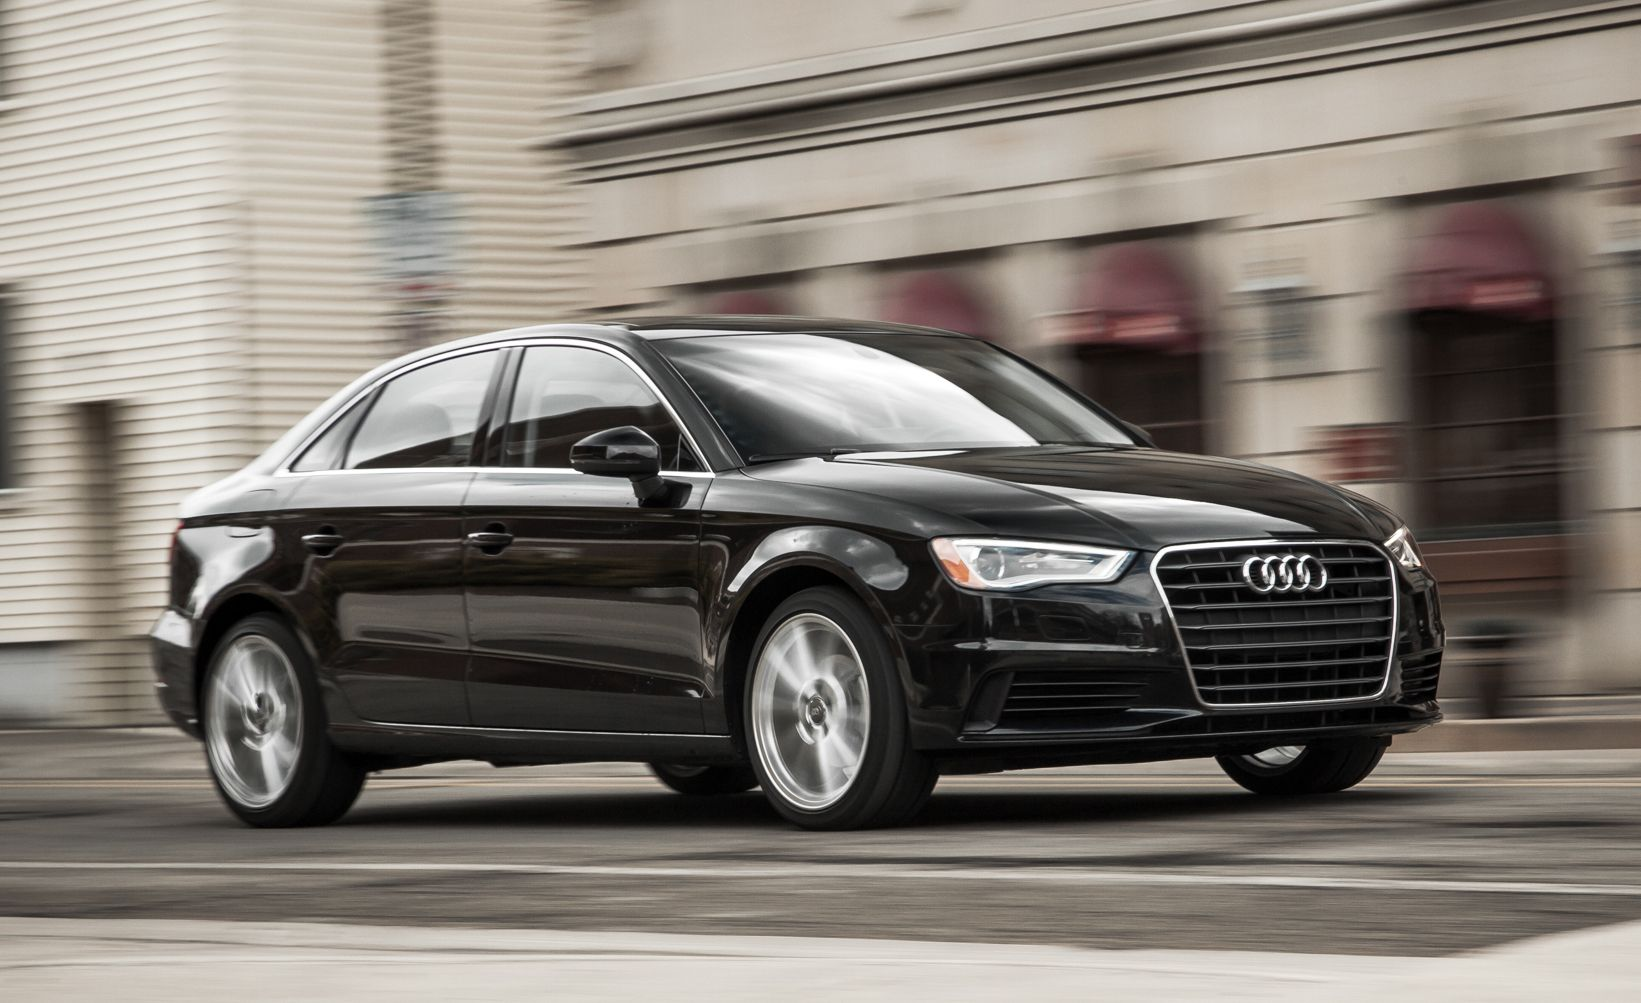 10 best looking cars of all time classy cars you can get for cheapimage